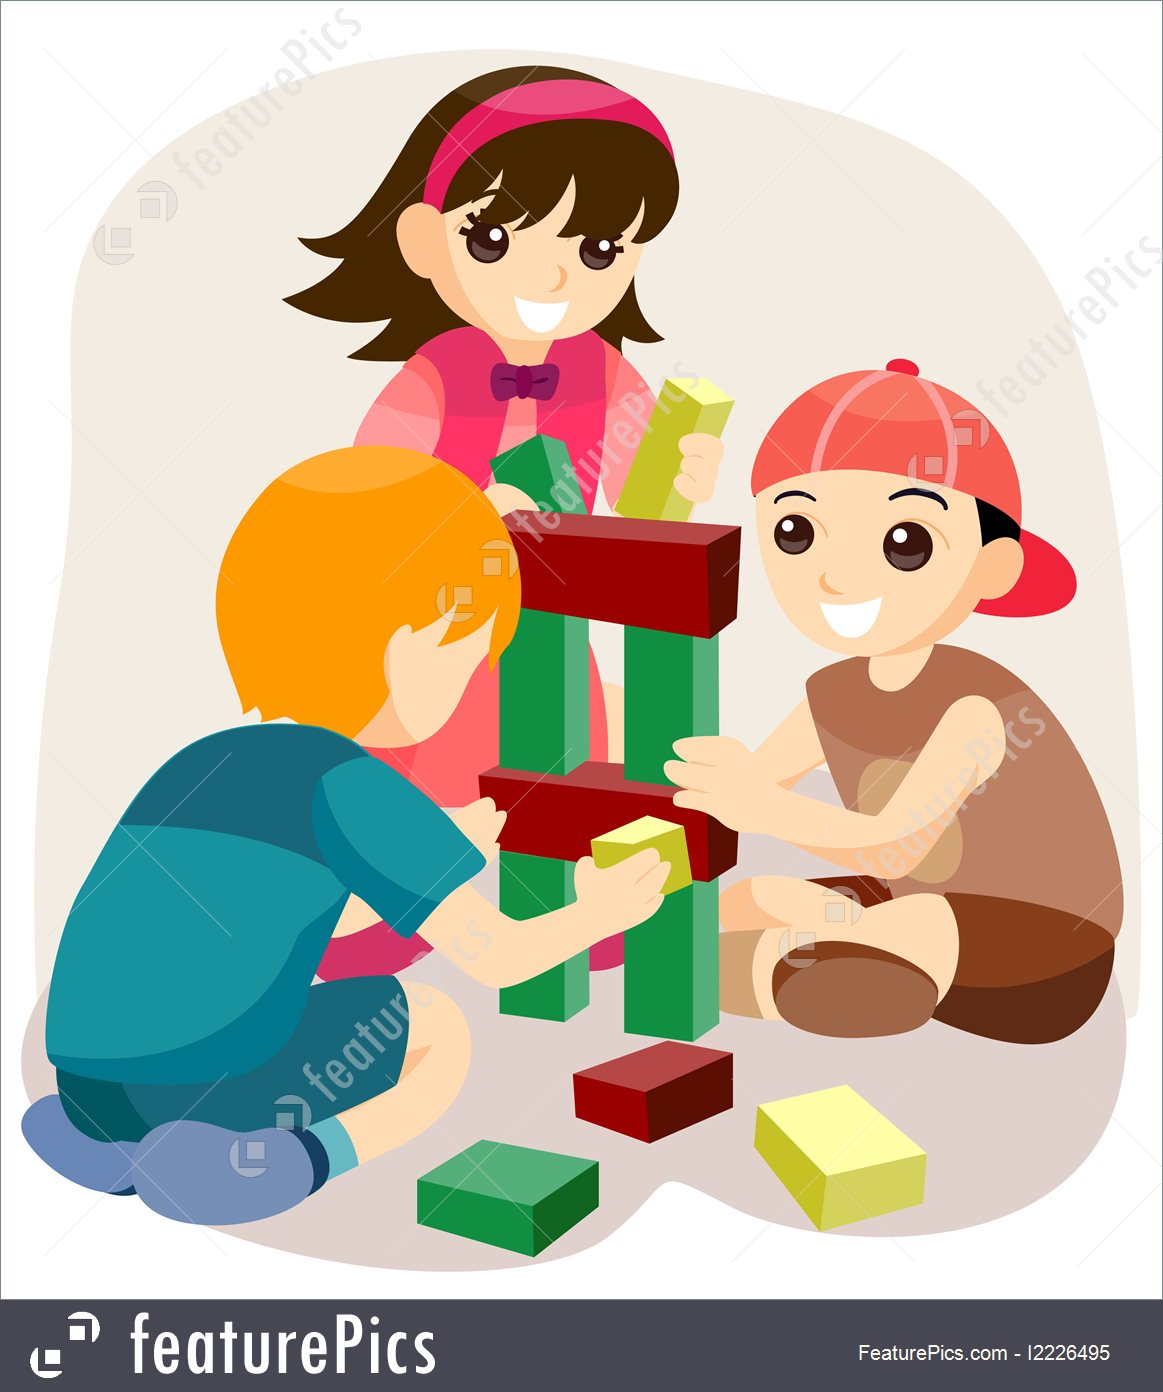 Child building with blocks clipart. Toys and souvenirs stock